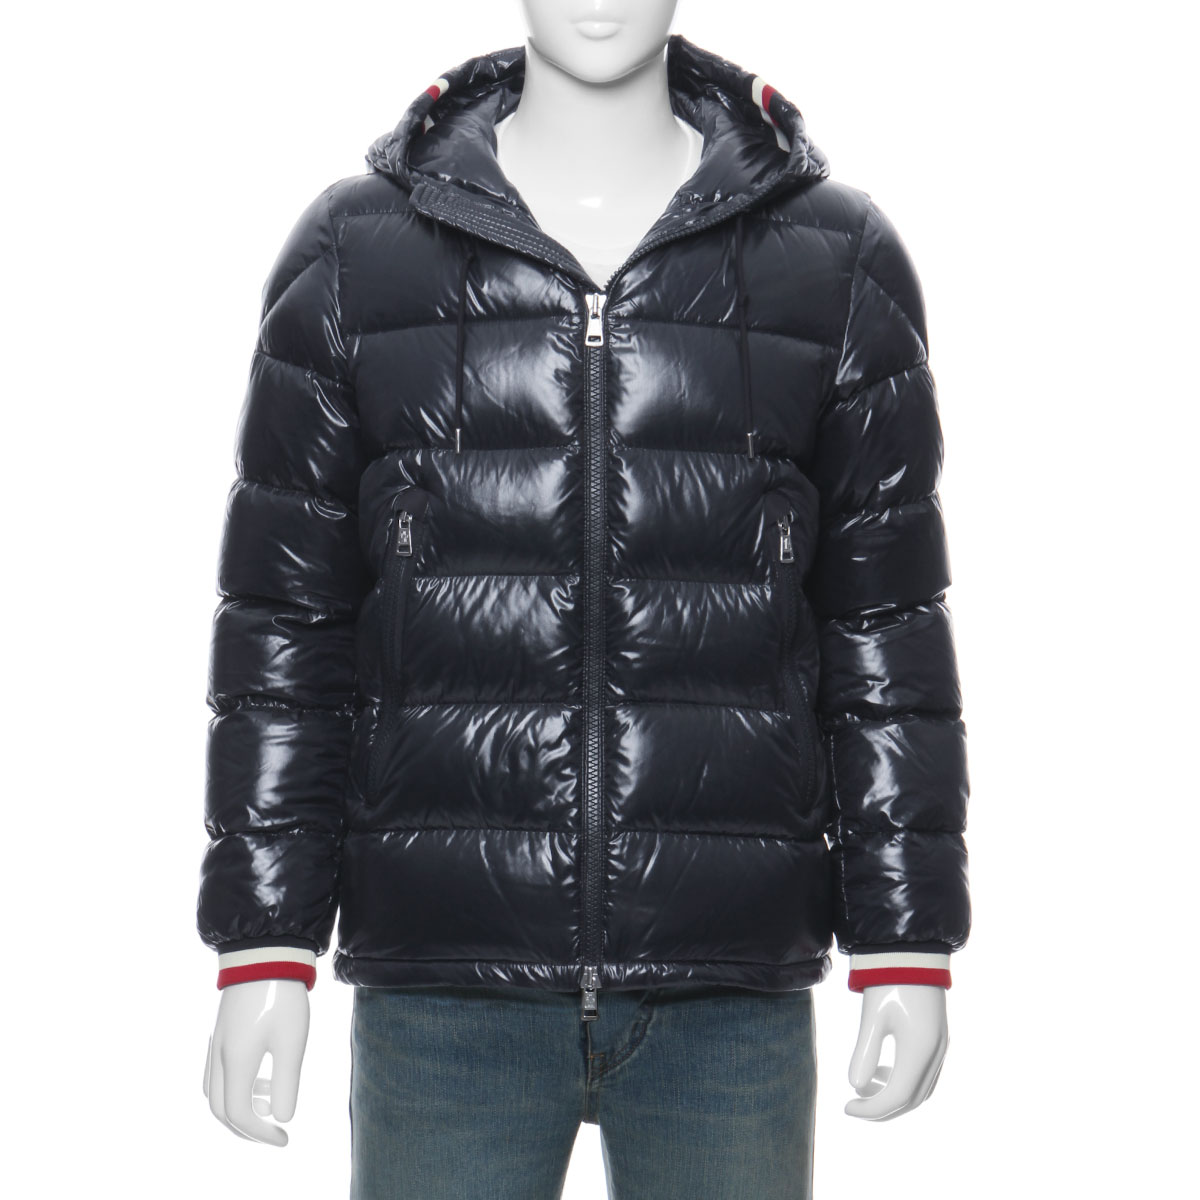 a7dadf4ba Down jacket ALBERIC Al Berwick NAVY dark blue with Monk rail MONCLER outer  men ALBERIC 68950 742 food